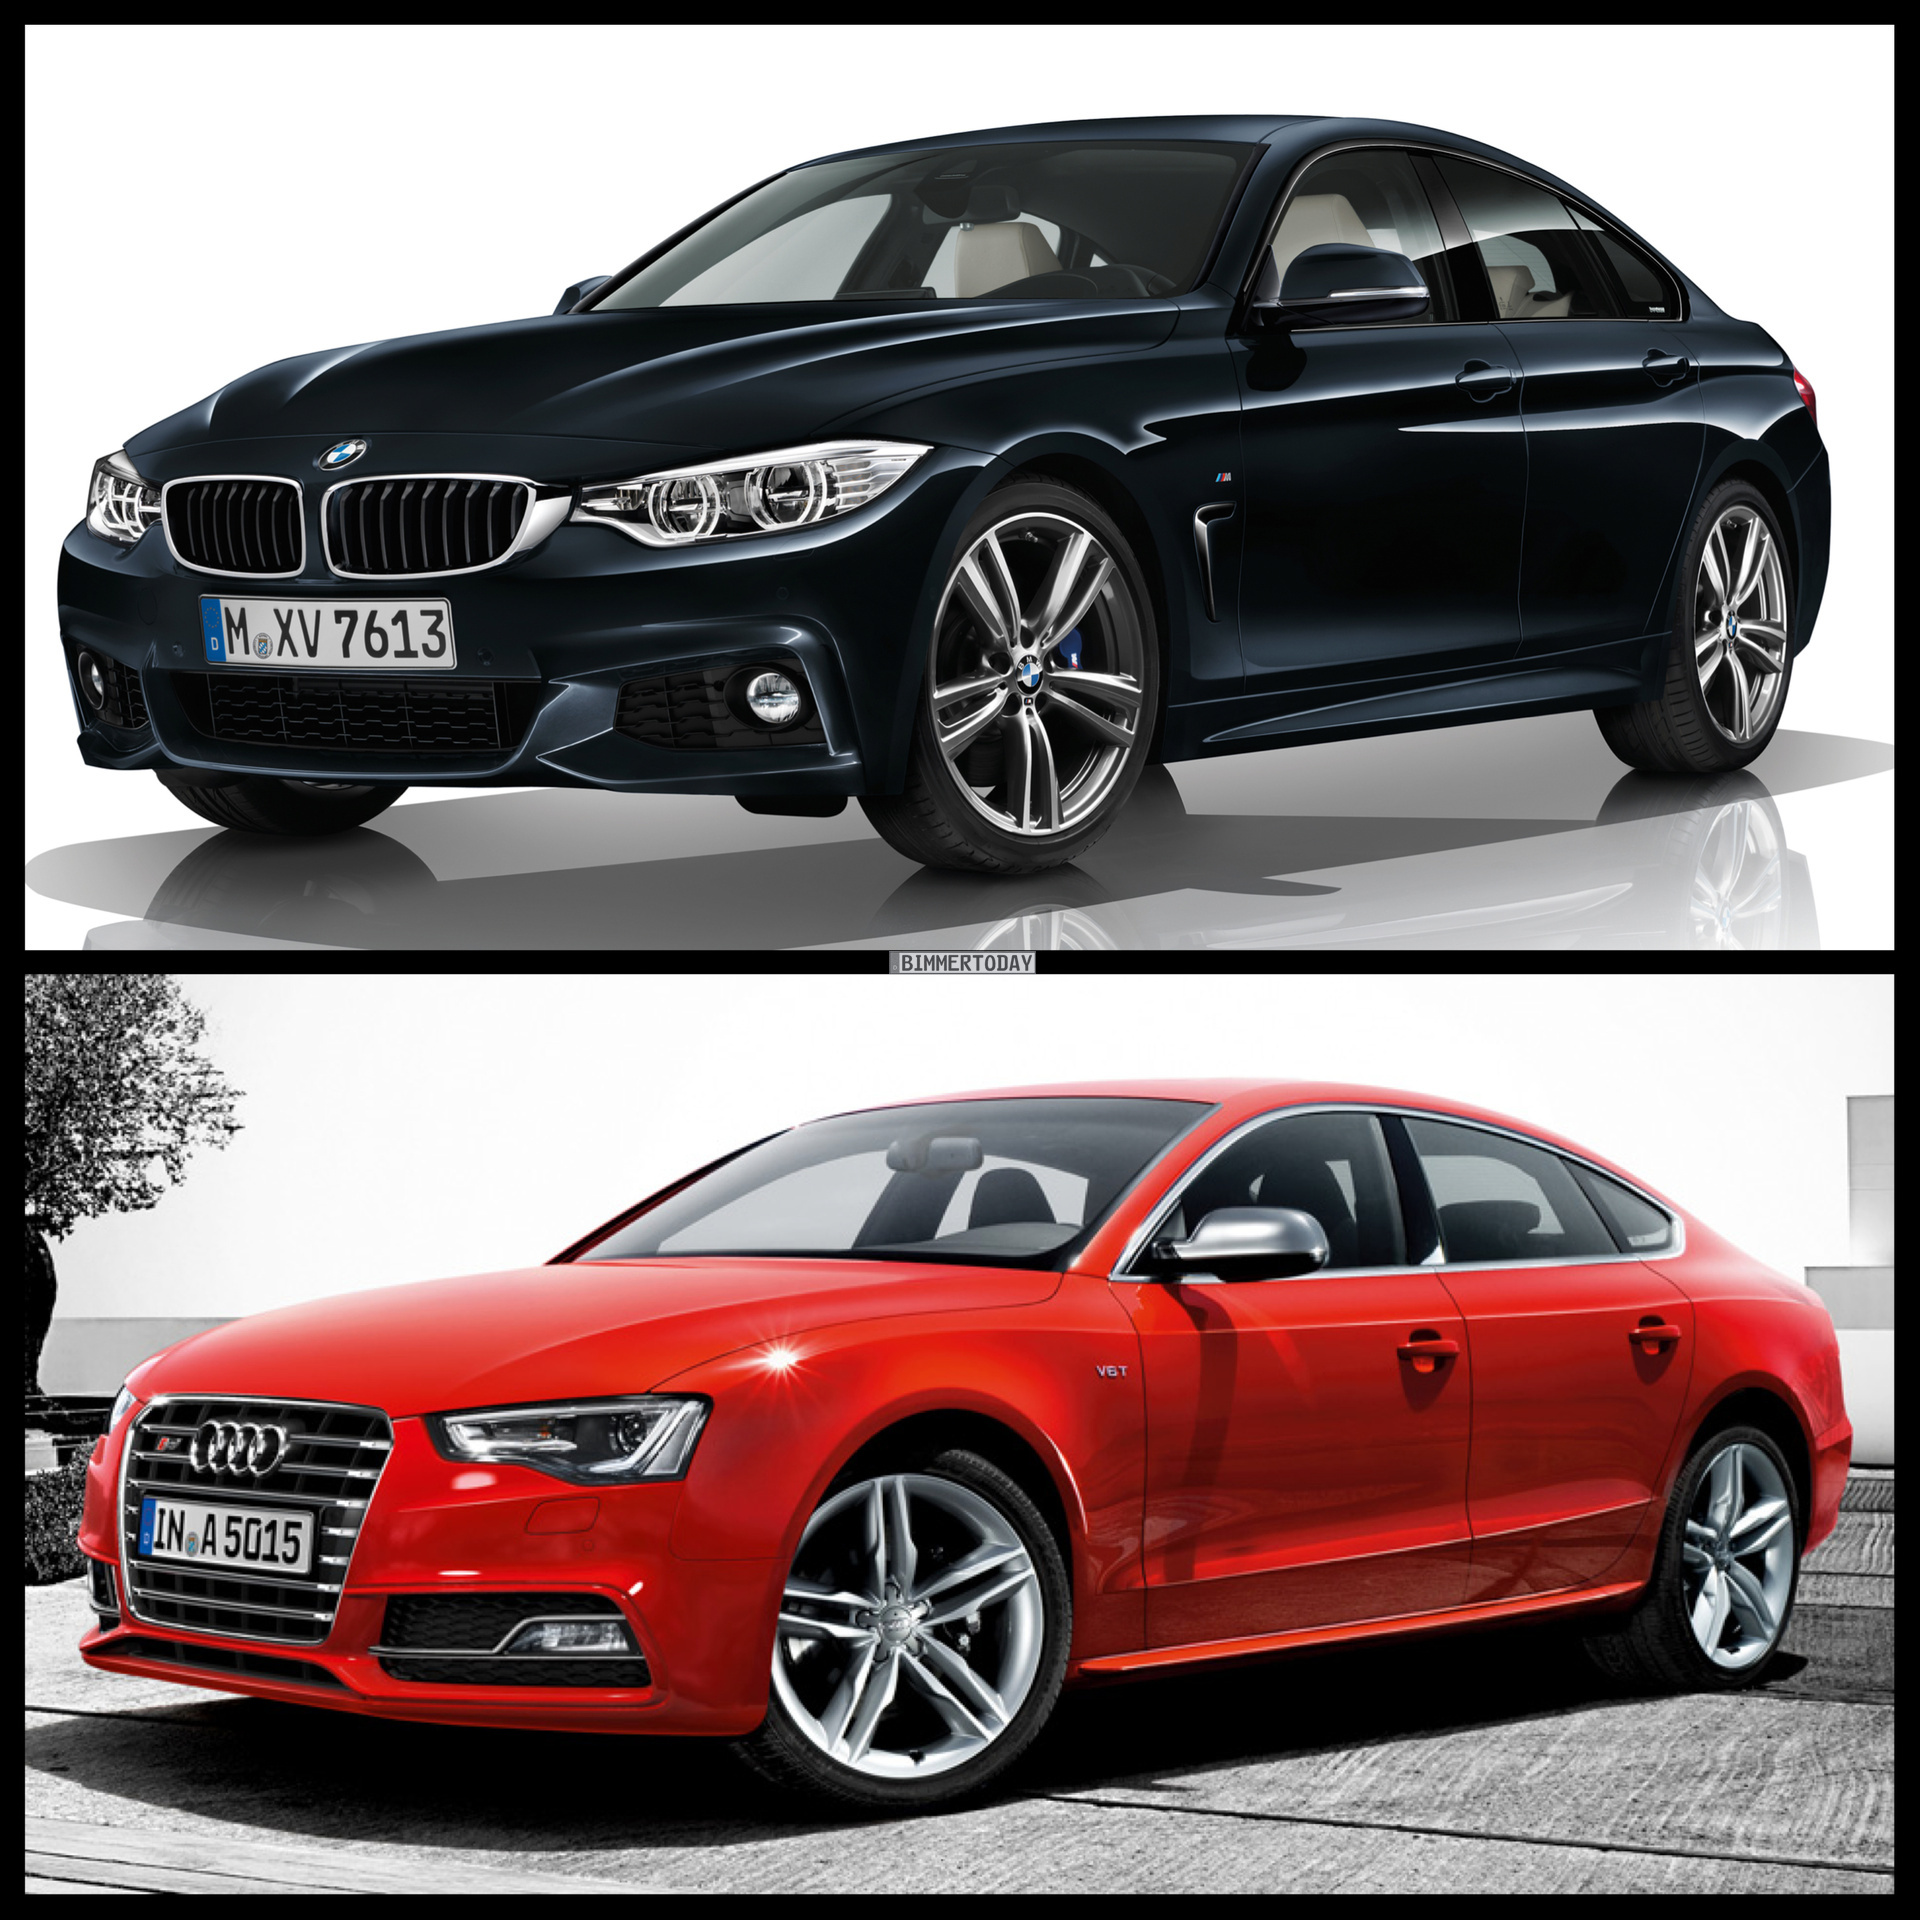 Photo Comparison: BMW 4 Series Gran Coupe vs Audi S5 Sportback